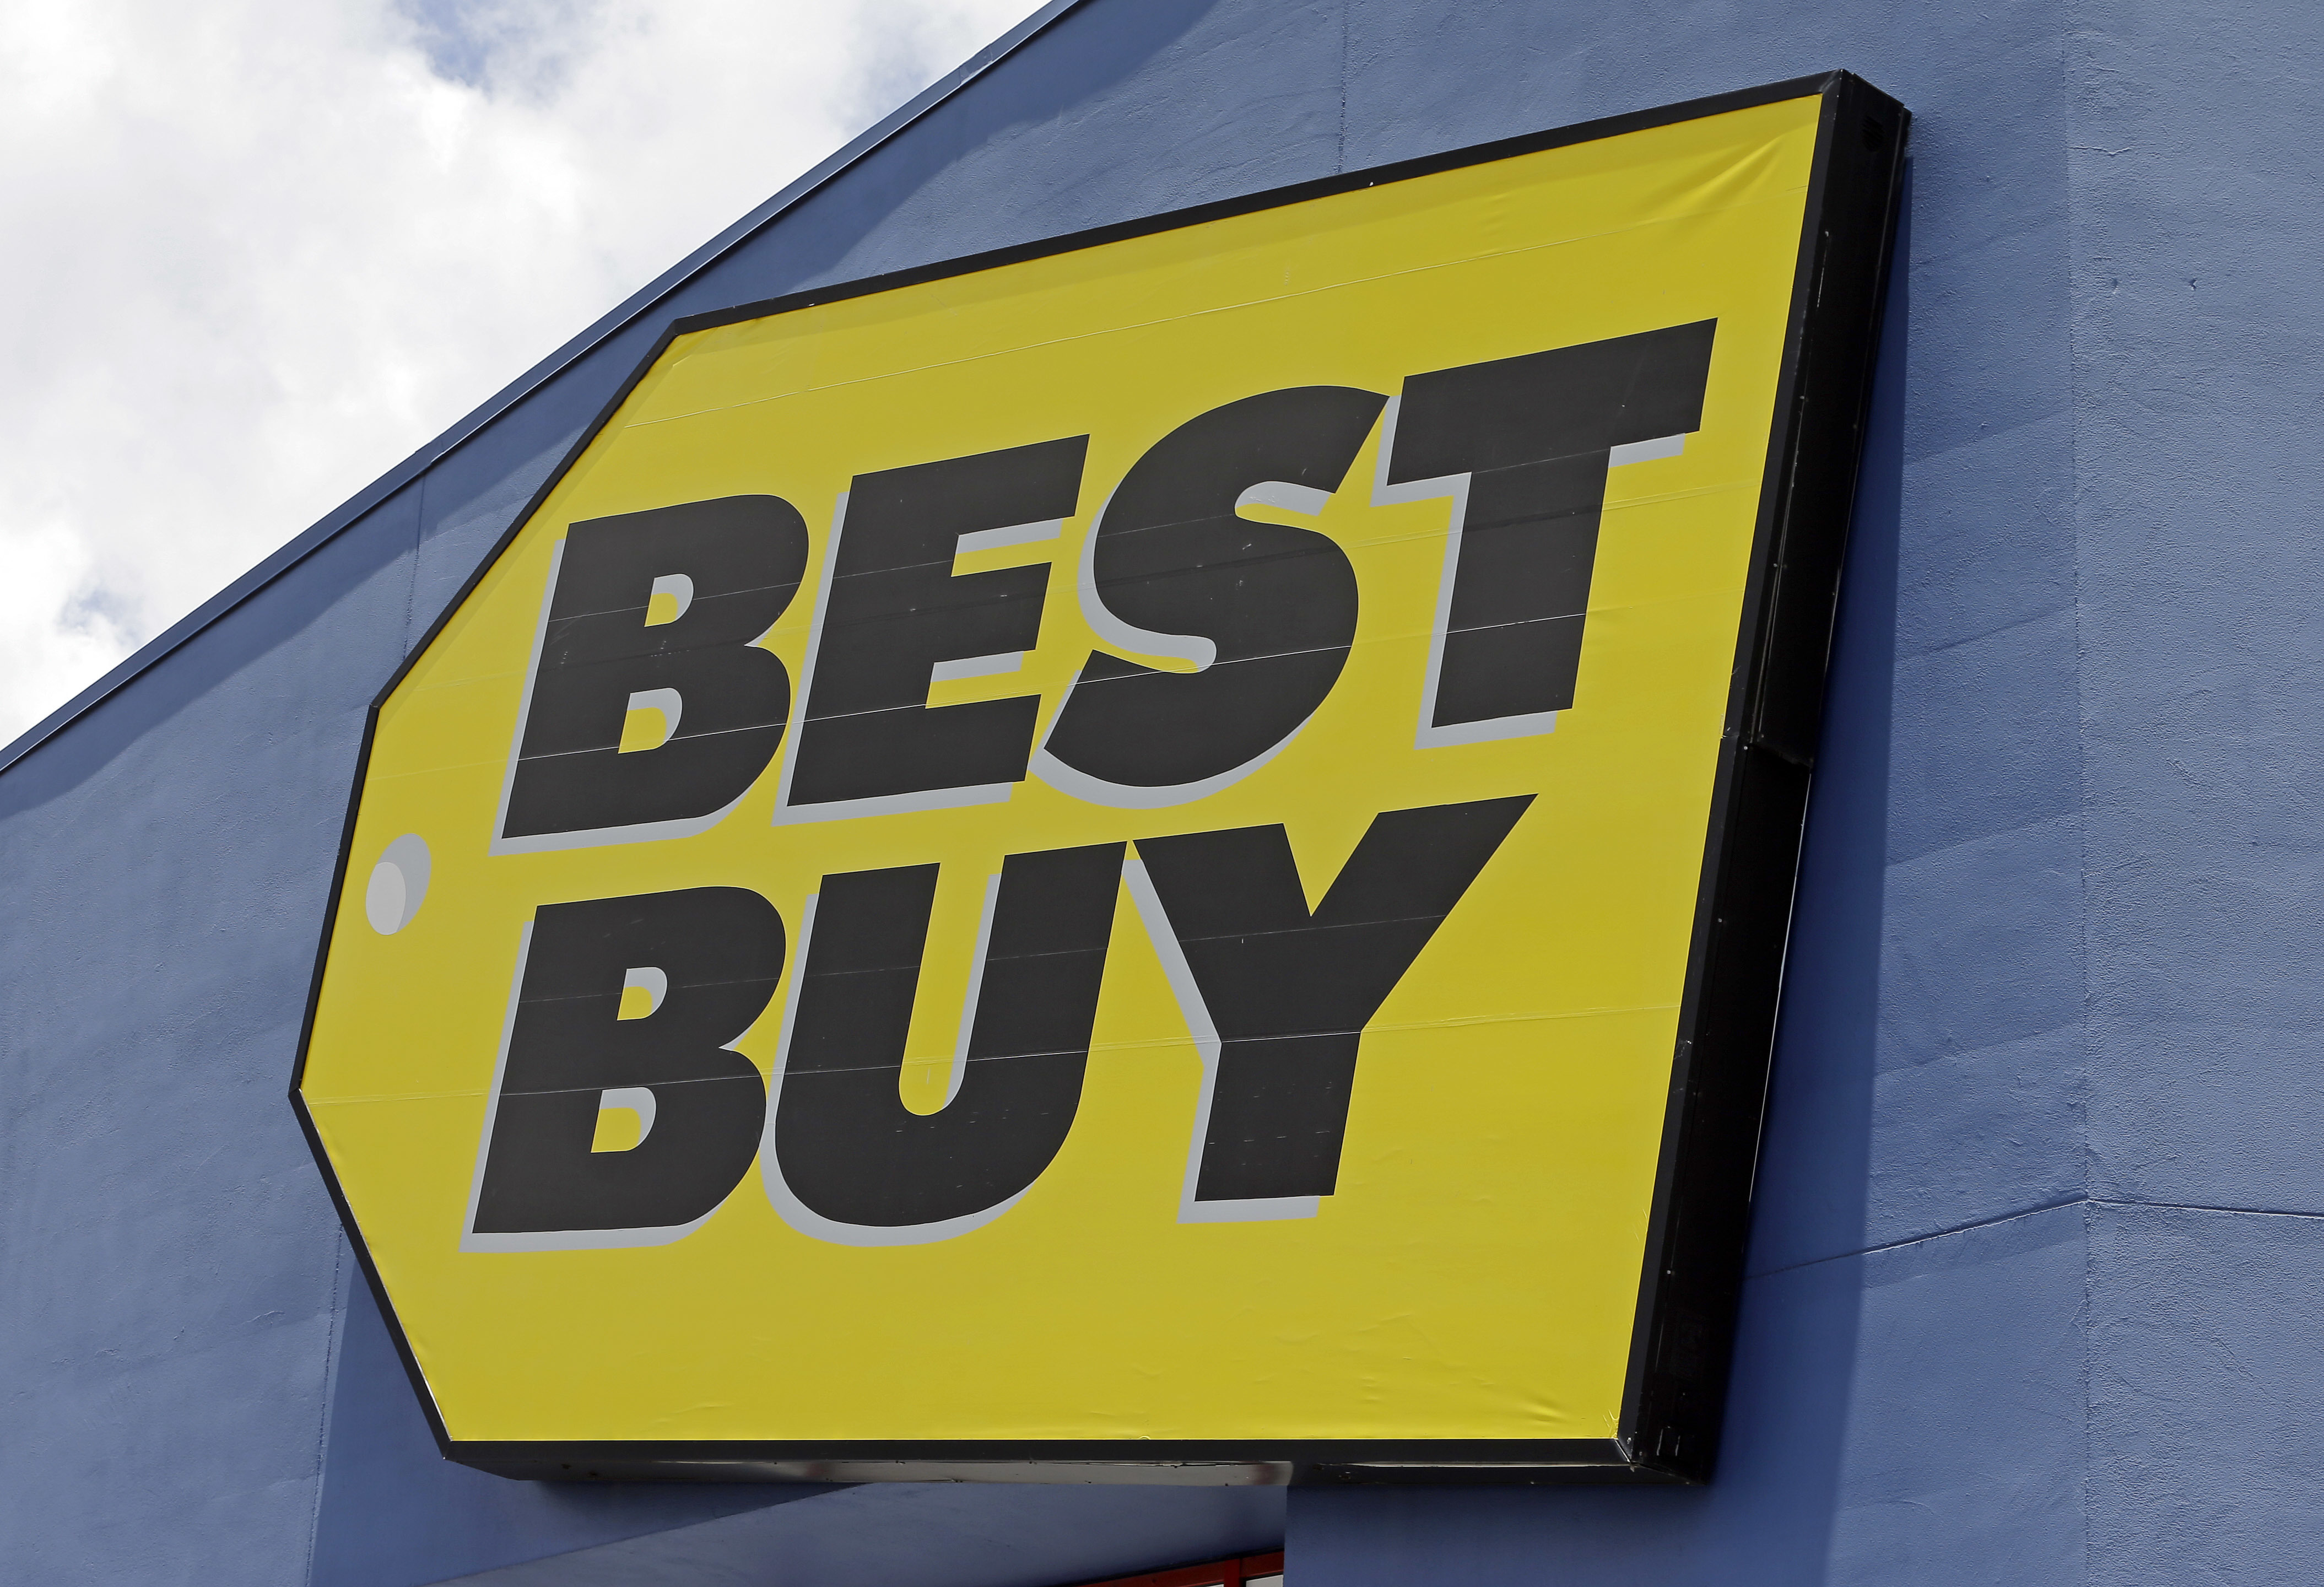 On Sept. 10 Best Buy will expand an In Home Advisor program to more than 920 big box stores in the U.S. The retailer is enjoying a robust turnaround under a new CEO who is focused on customer service and experiences.